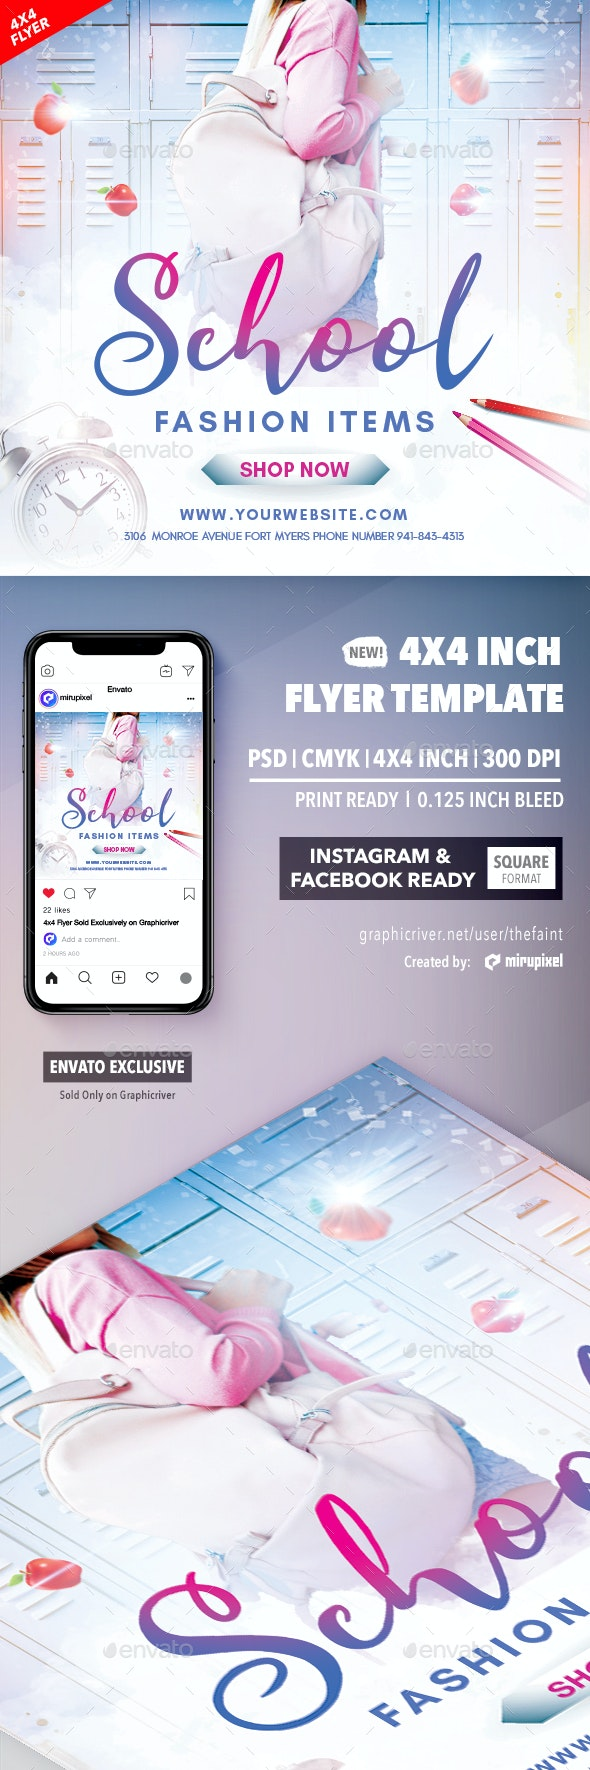 School Fashion 4x4 Inch Flyer Template - Commerce Flyers